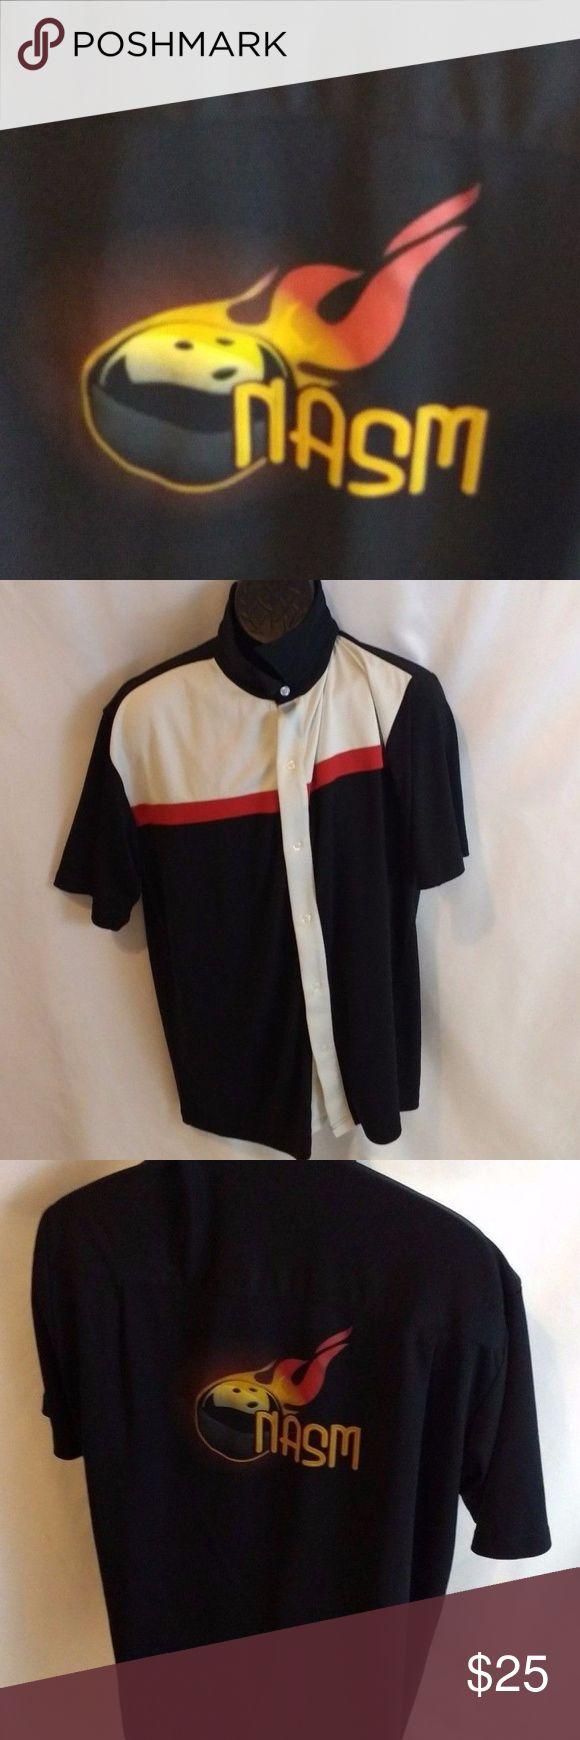 """Black Boardroom Bowling Shirt XL """"Nasm"""" shirt Excellent Pre-Owned Condition   Size: XL Theme: Custom Bowling Shirt   Don't be afraid to make an offer I'm very negotiable  Pet/Smoke Free Home  Measurements  Length  30"""" Pit to Pit 25"""" Shoulder To Sleeve 10"""" a10 Black Boardroom Shirts Casual Button Down Shirts #bowlingshirts"""